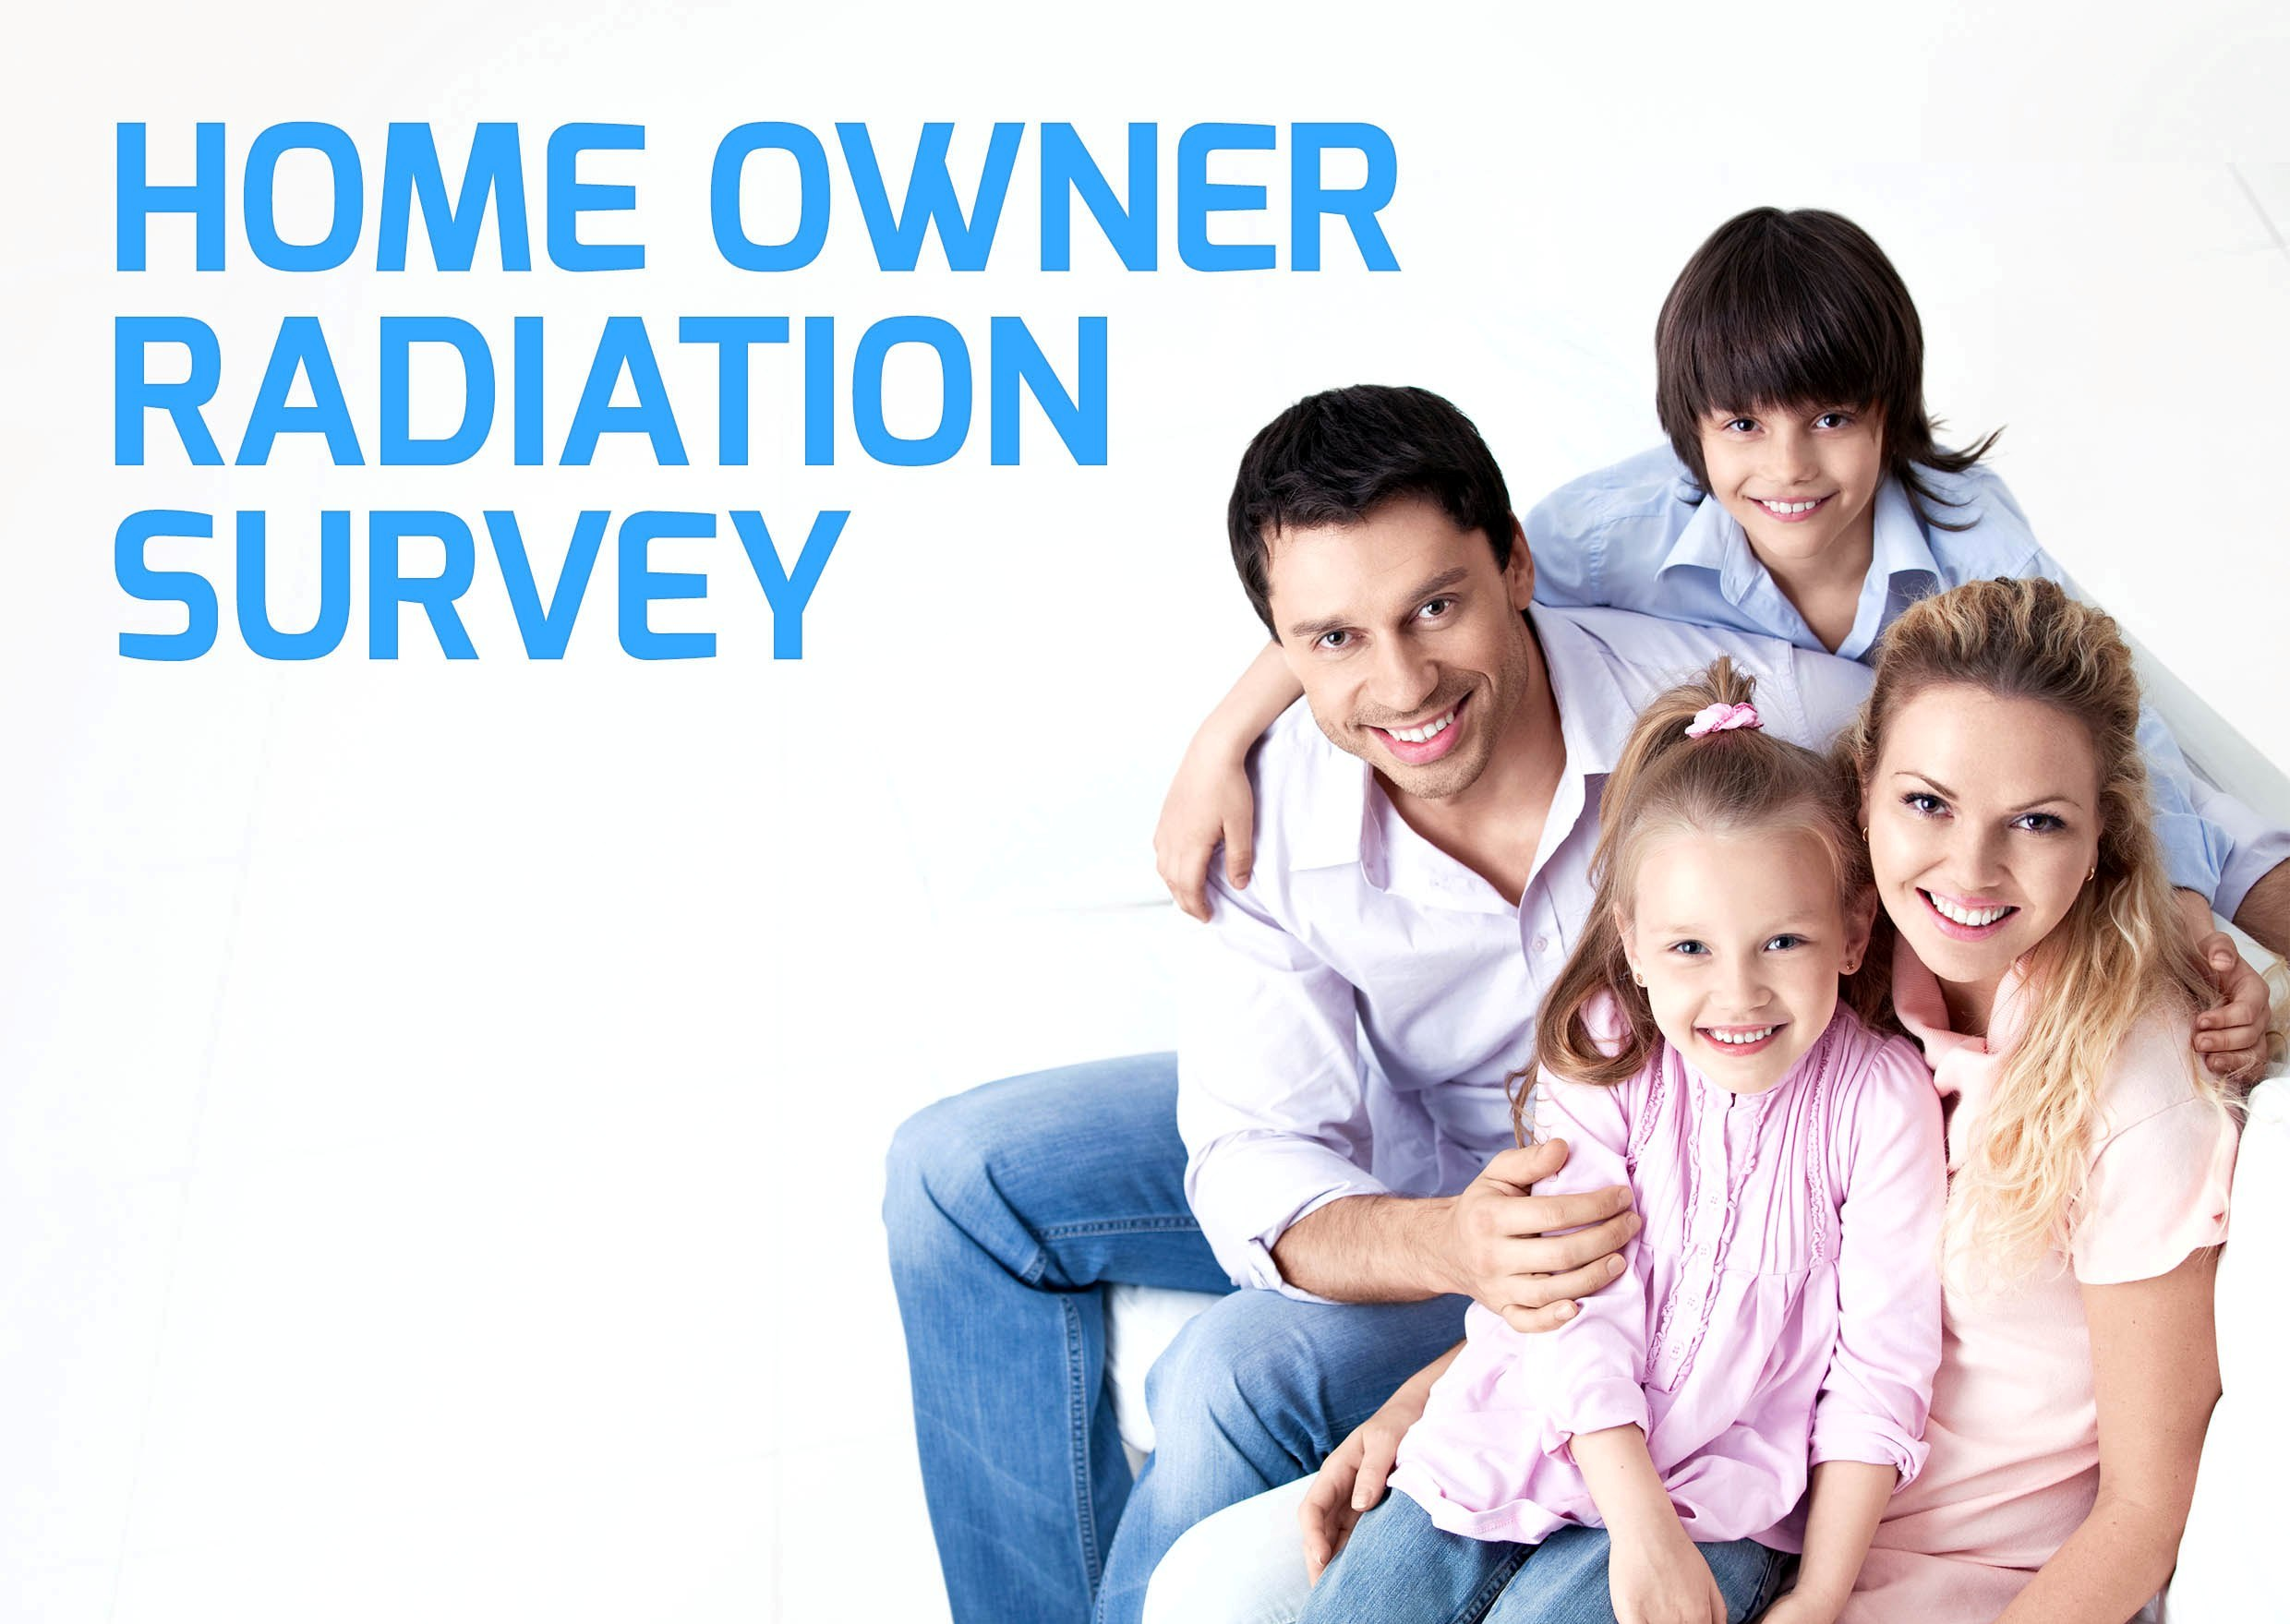 Protect your health and that of your family members from potential health risks of EMF pollution by scheduling a radiation test.